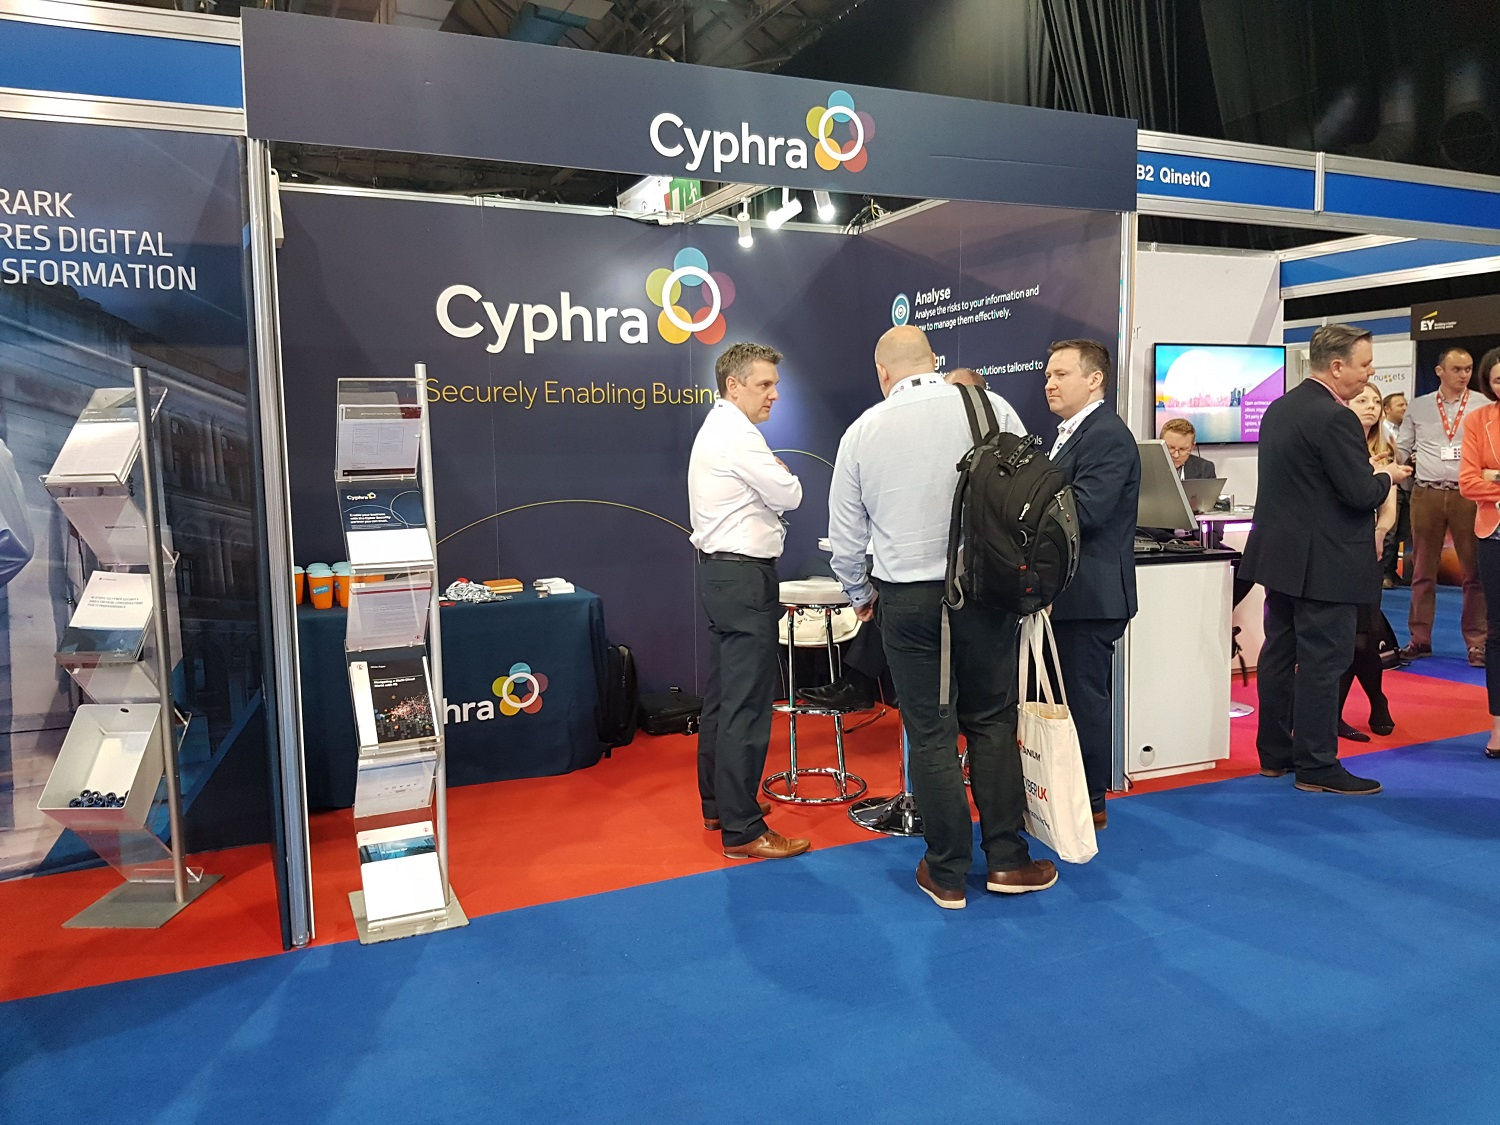 cyberUK cyphra securely enabling business